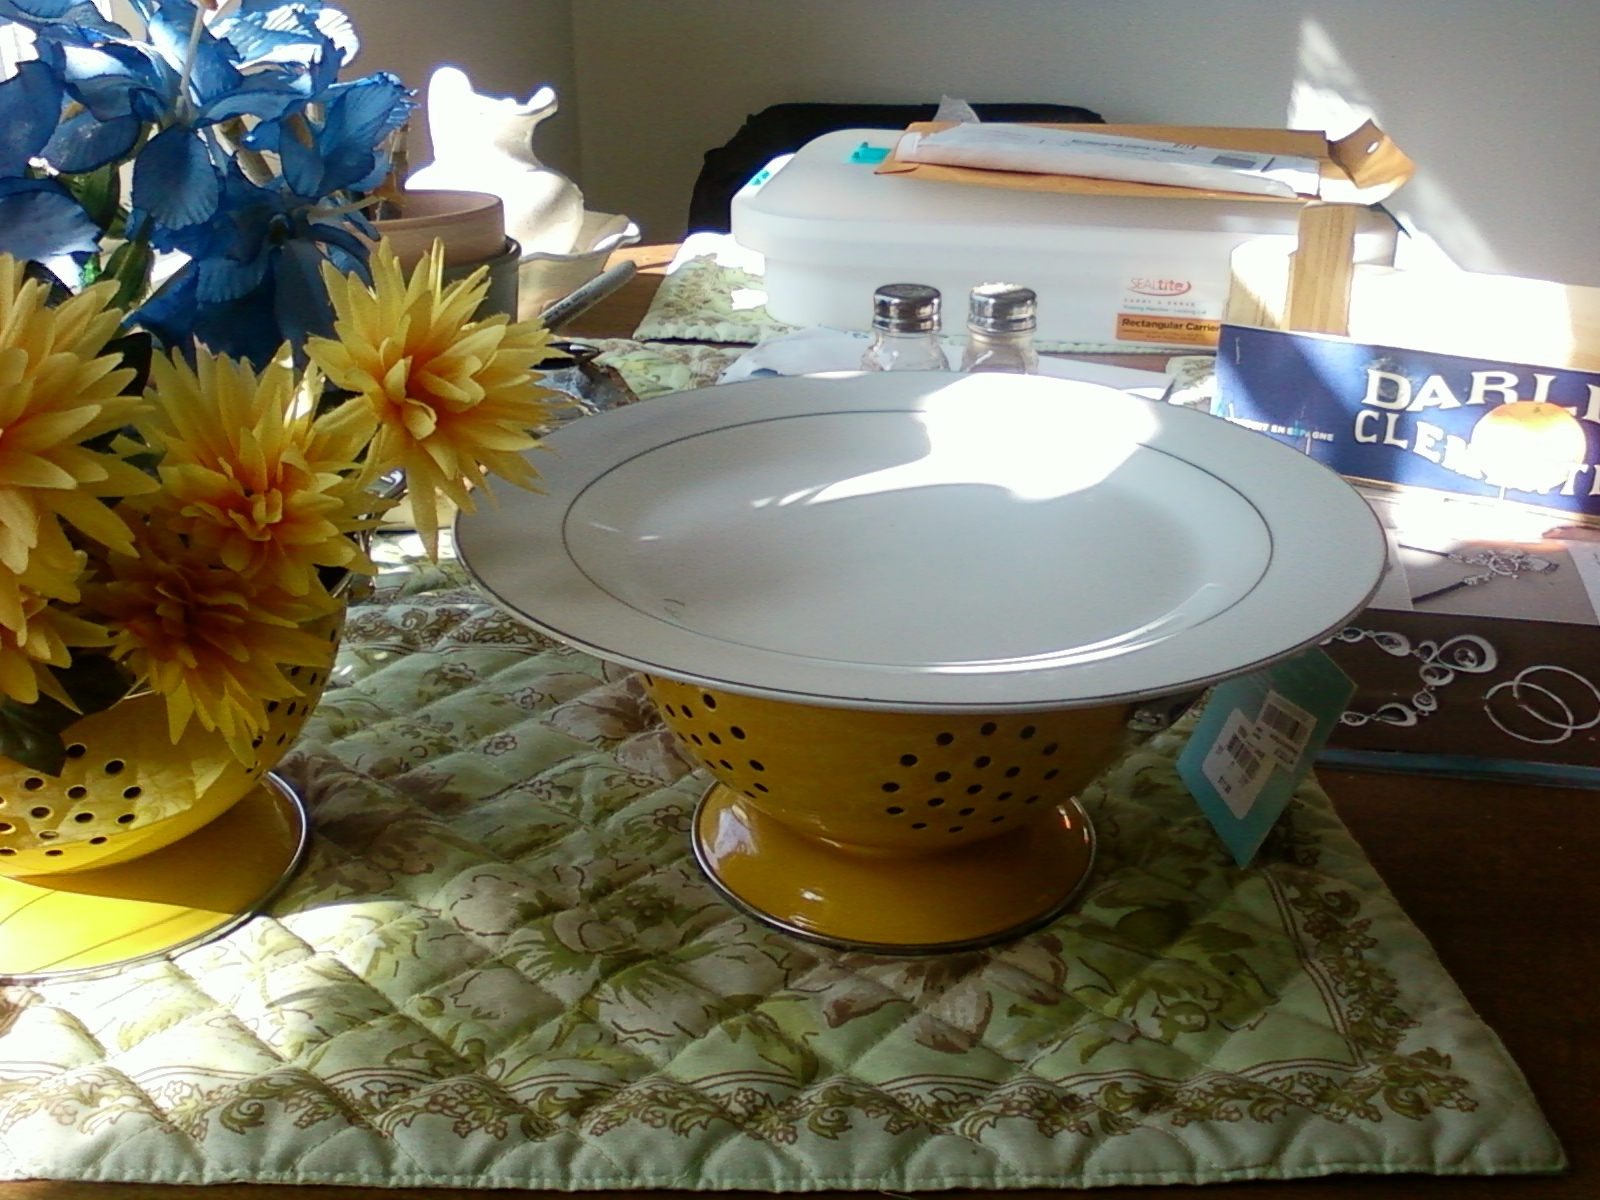 Flowers & Decor, Cakes, Registry, yellow, cake, Centerpieces, Kitchen, Kitchen Appliances, Flowers, Macy's, Centerpiece, Cookies, Floral, Arrangement, Stand, Retro, Martha, Stewart, Chic, Deserts, Shabby, Oranges, Collander, Clemantines